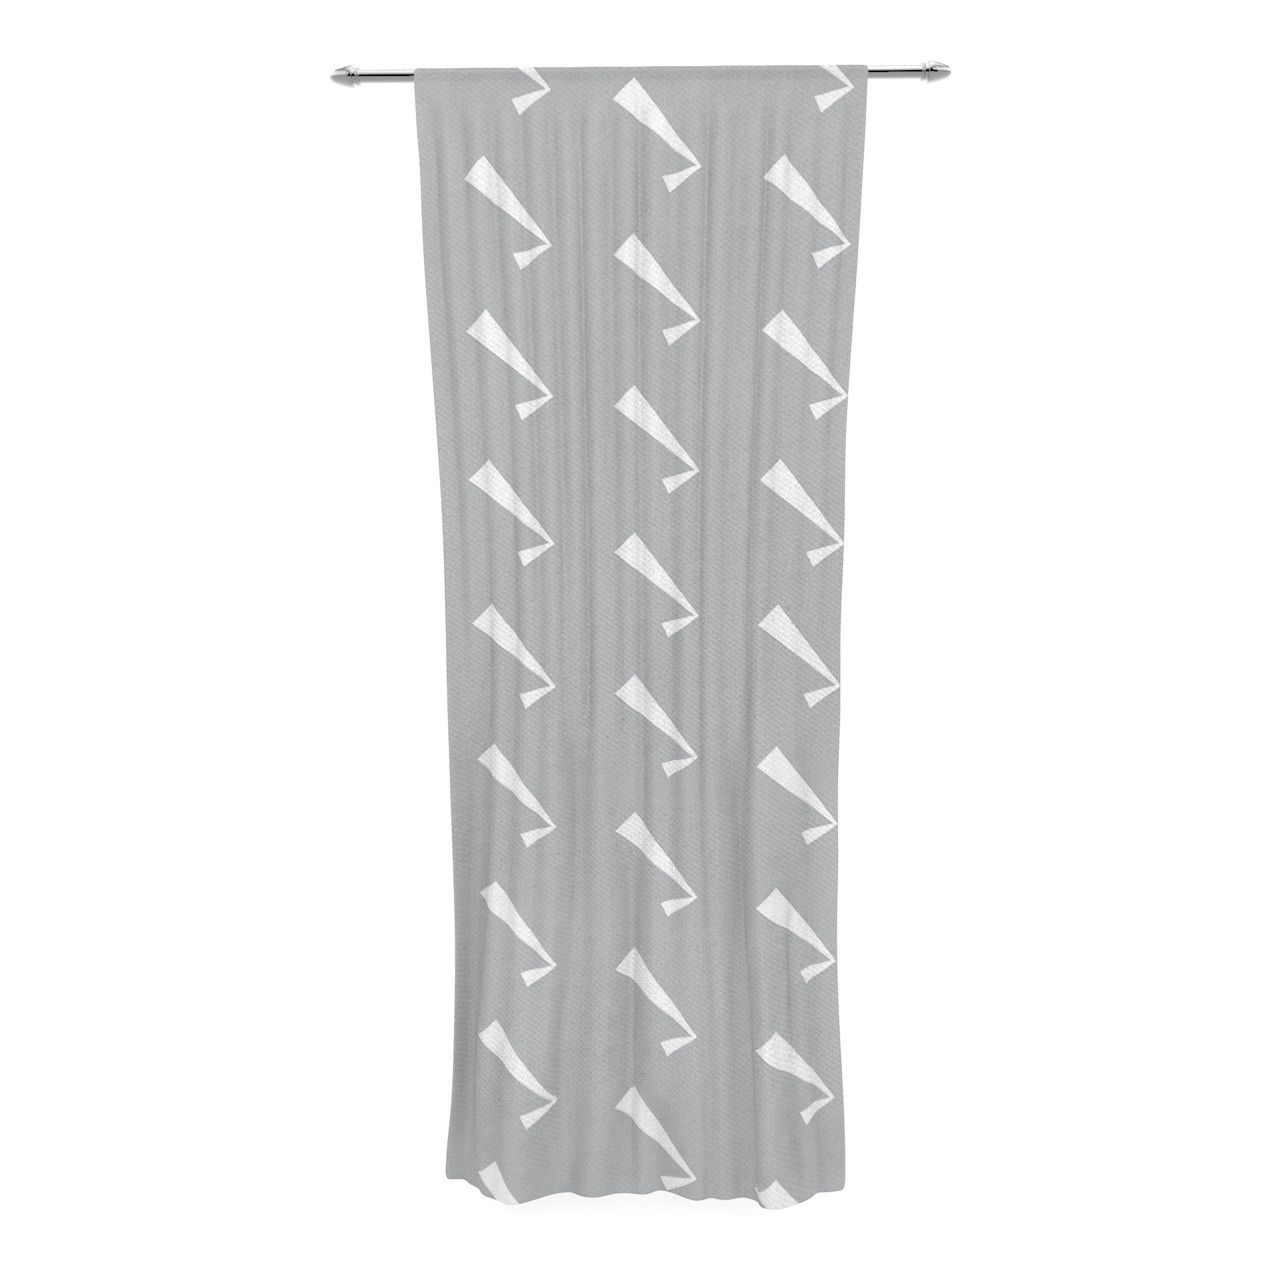 "KESS Original ""Check You Out"" Gray White Decorative Sheer Curtain"